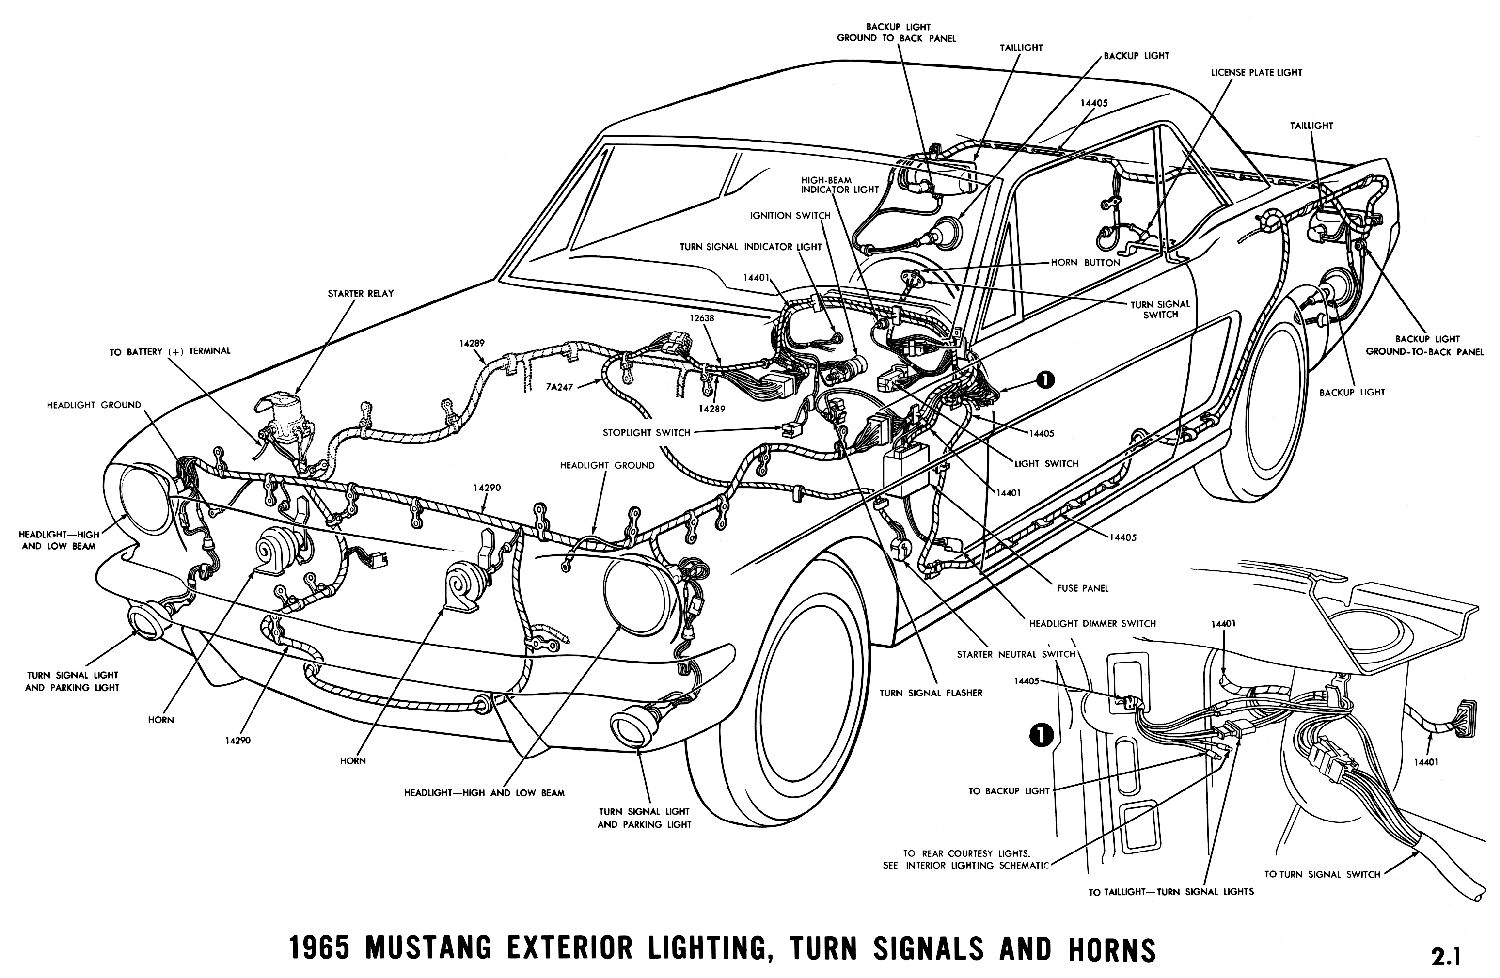 1965 Mustang Wiring Diagrams Average Joe Restoration – Exterior Lights Wiring Diagram 1996 Ford